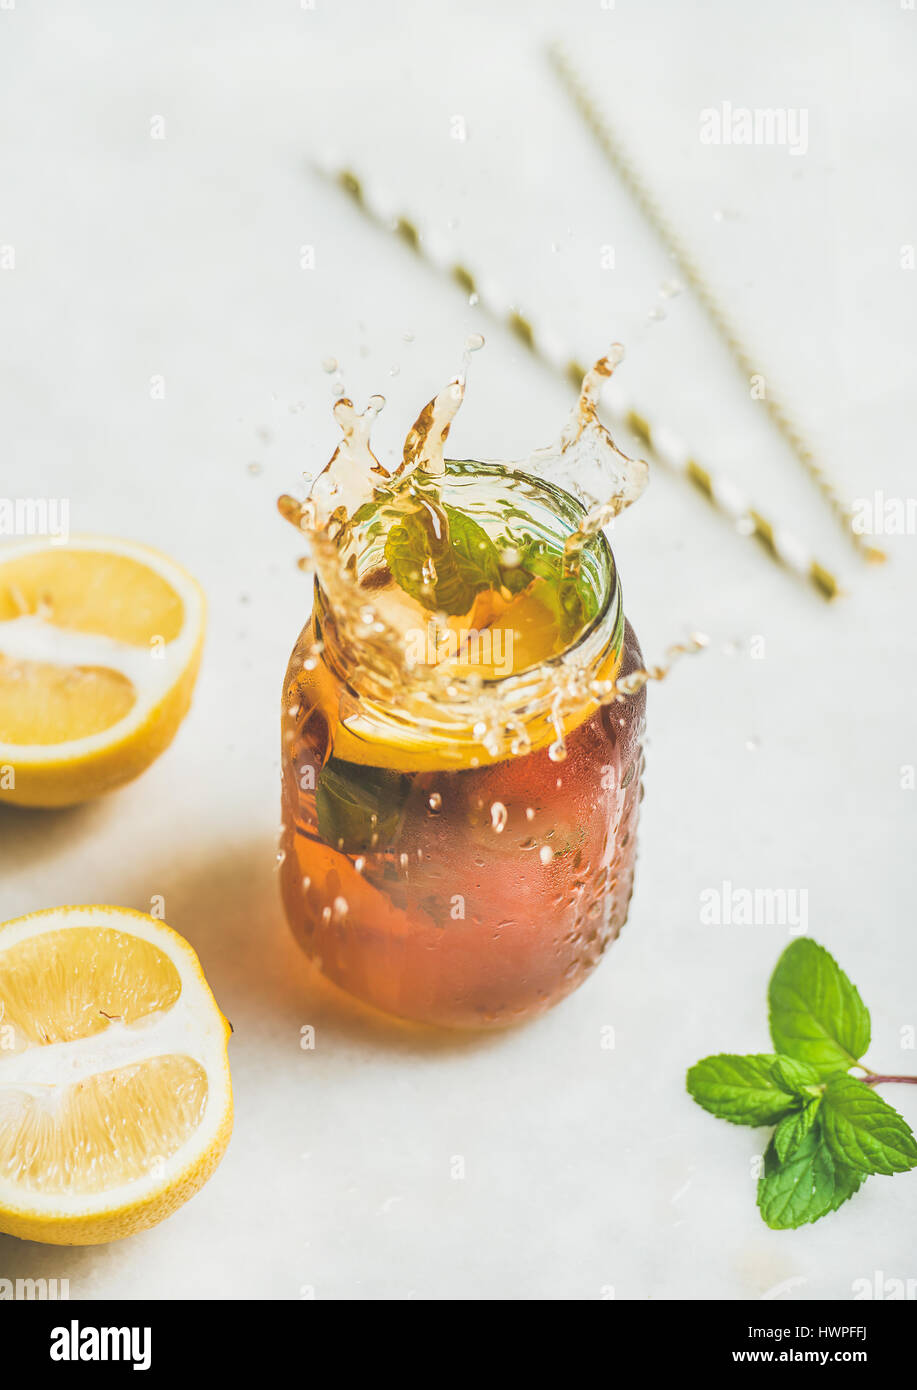 Summer cold Iced tea with lemon and herbs, vertical composition - Stock Image